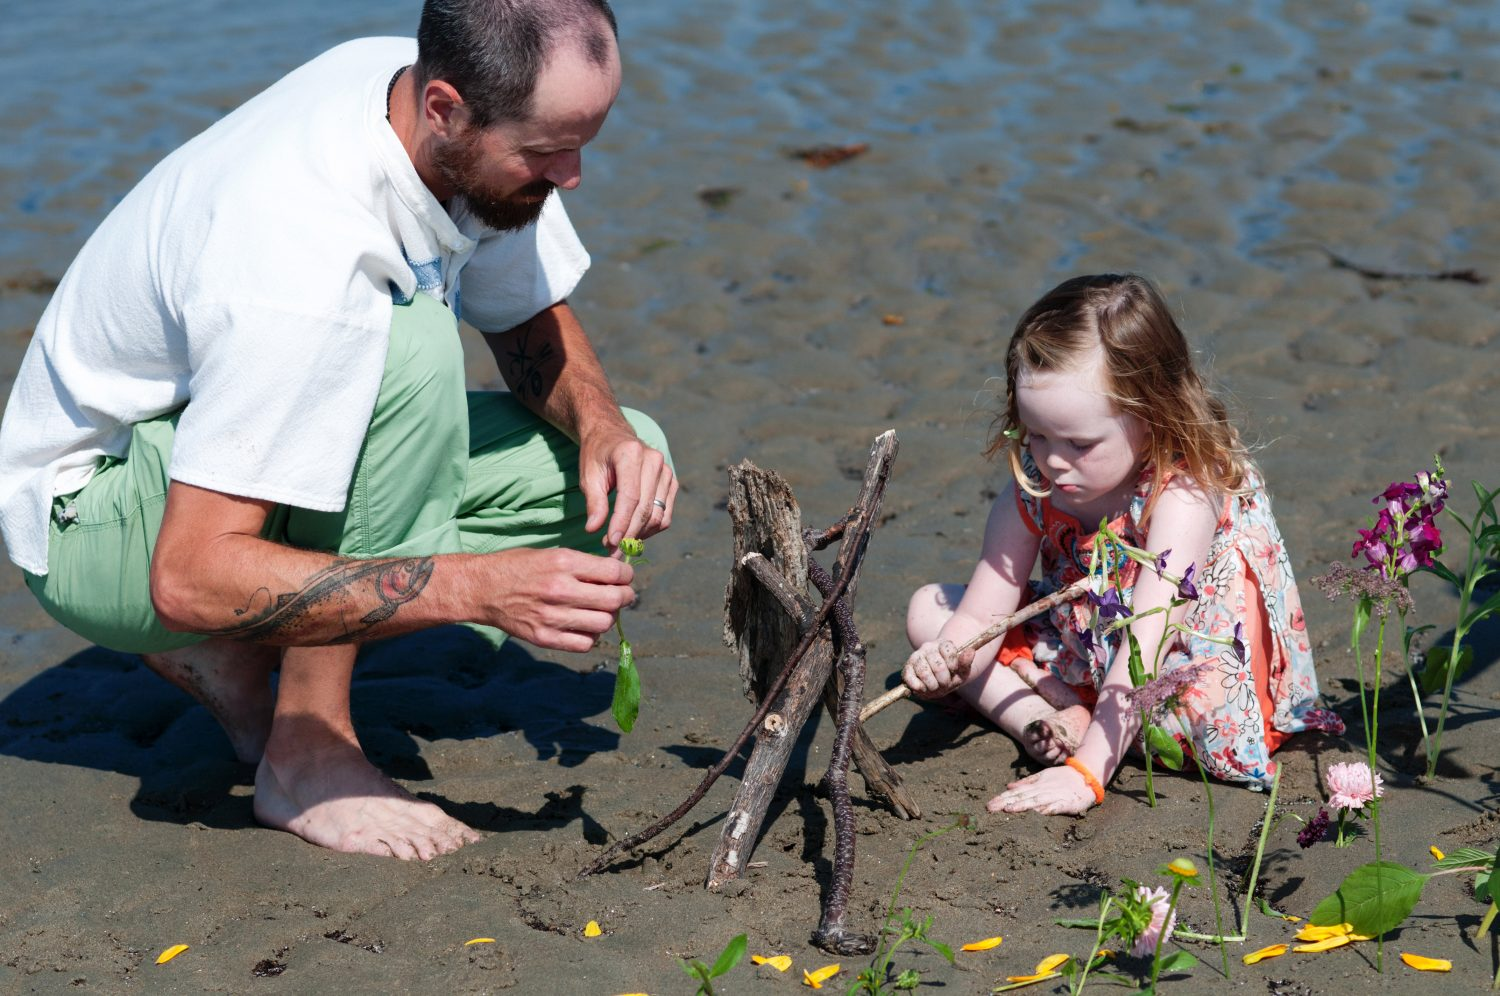 father and daughter playing with sticks and flowers on beach